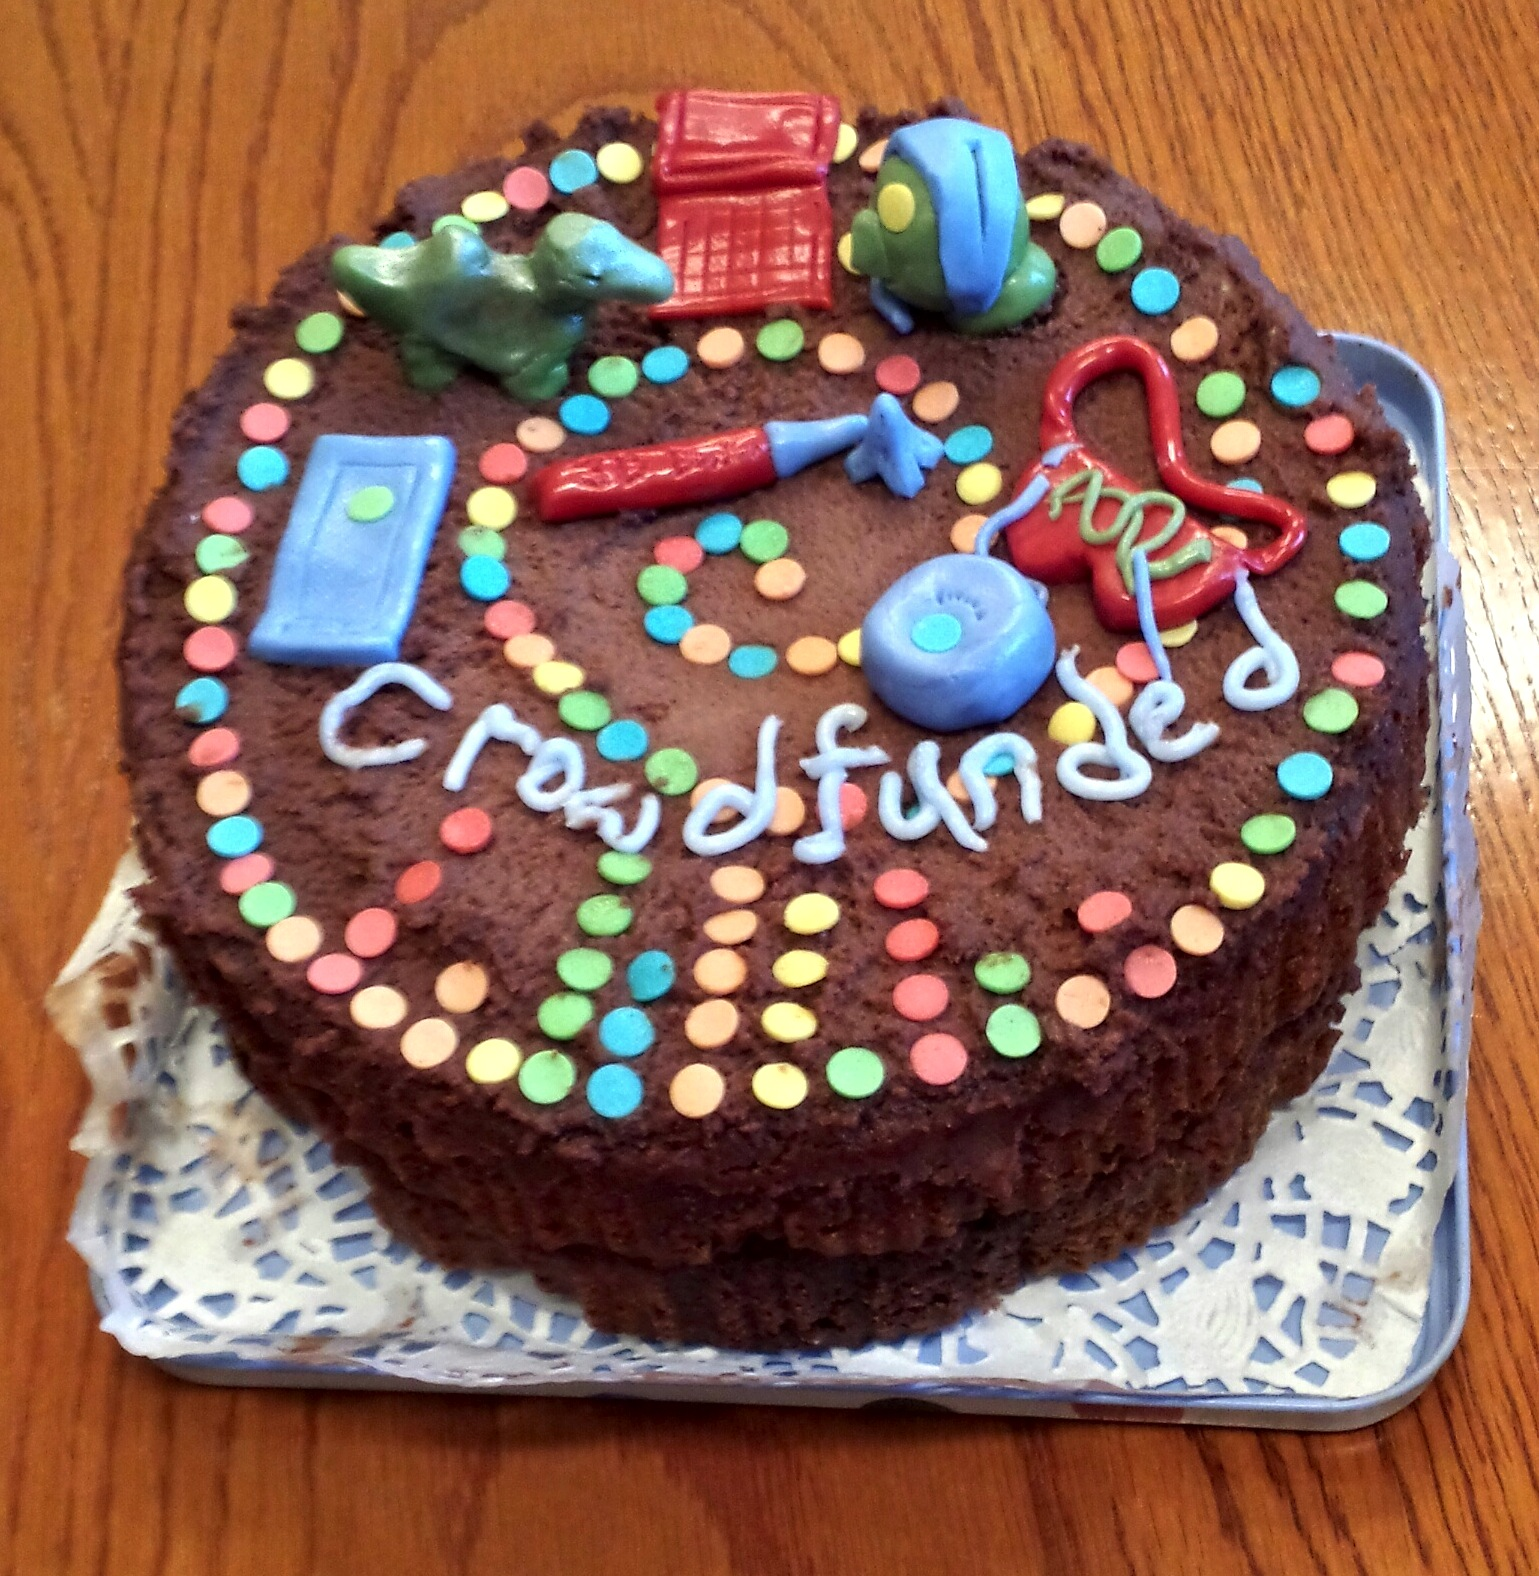 Themed crowdfunding cake expertly baked by Sheona Burrow